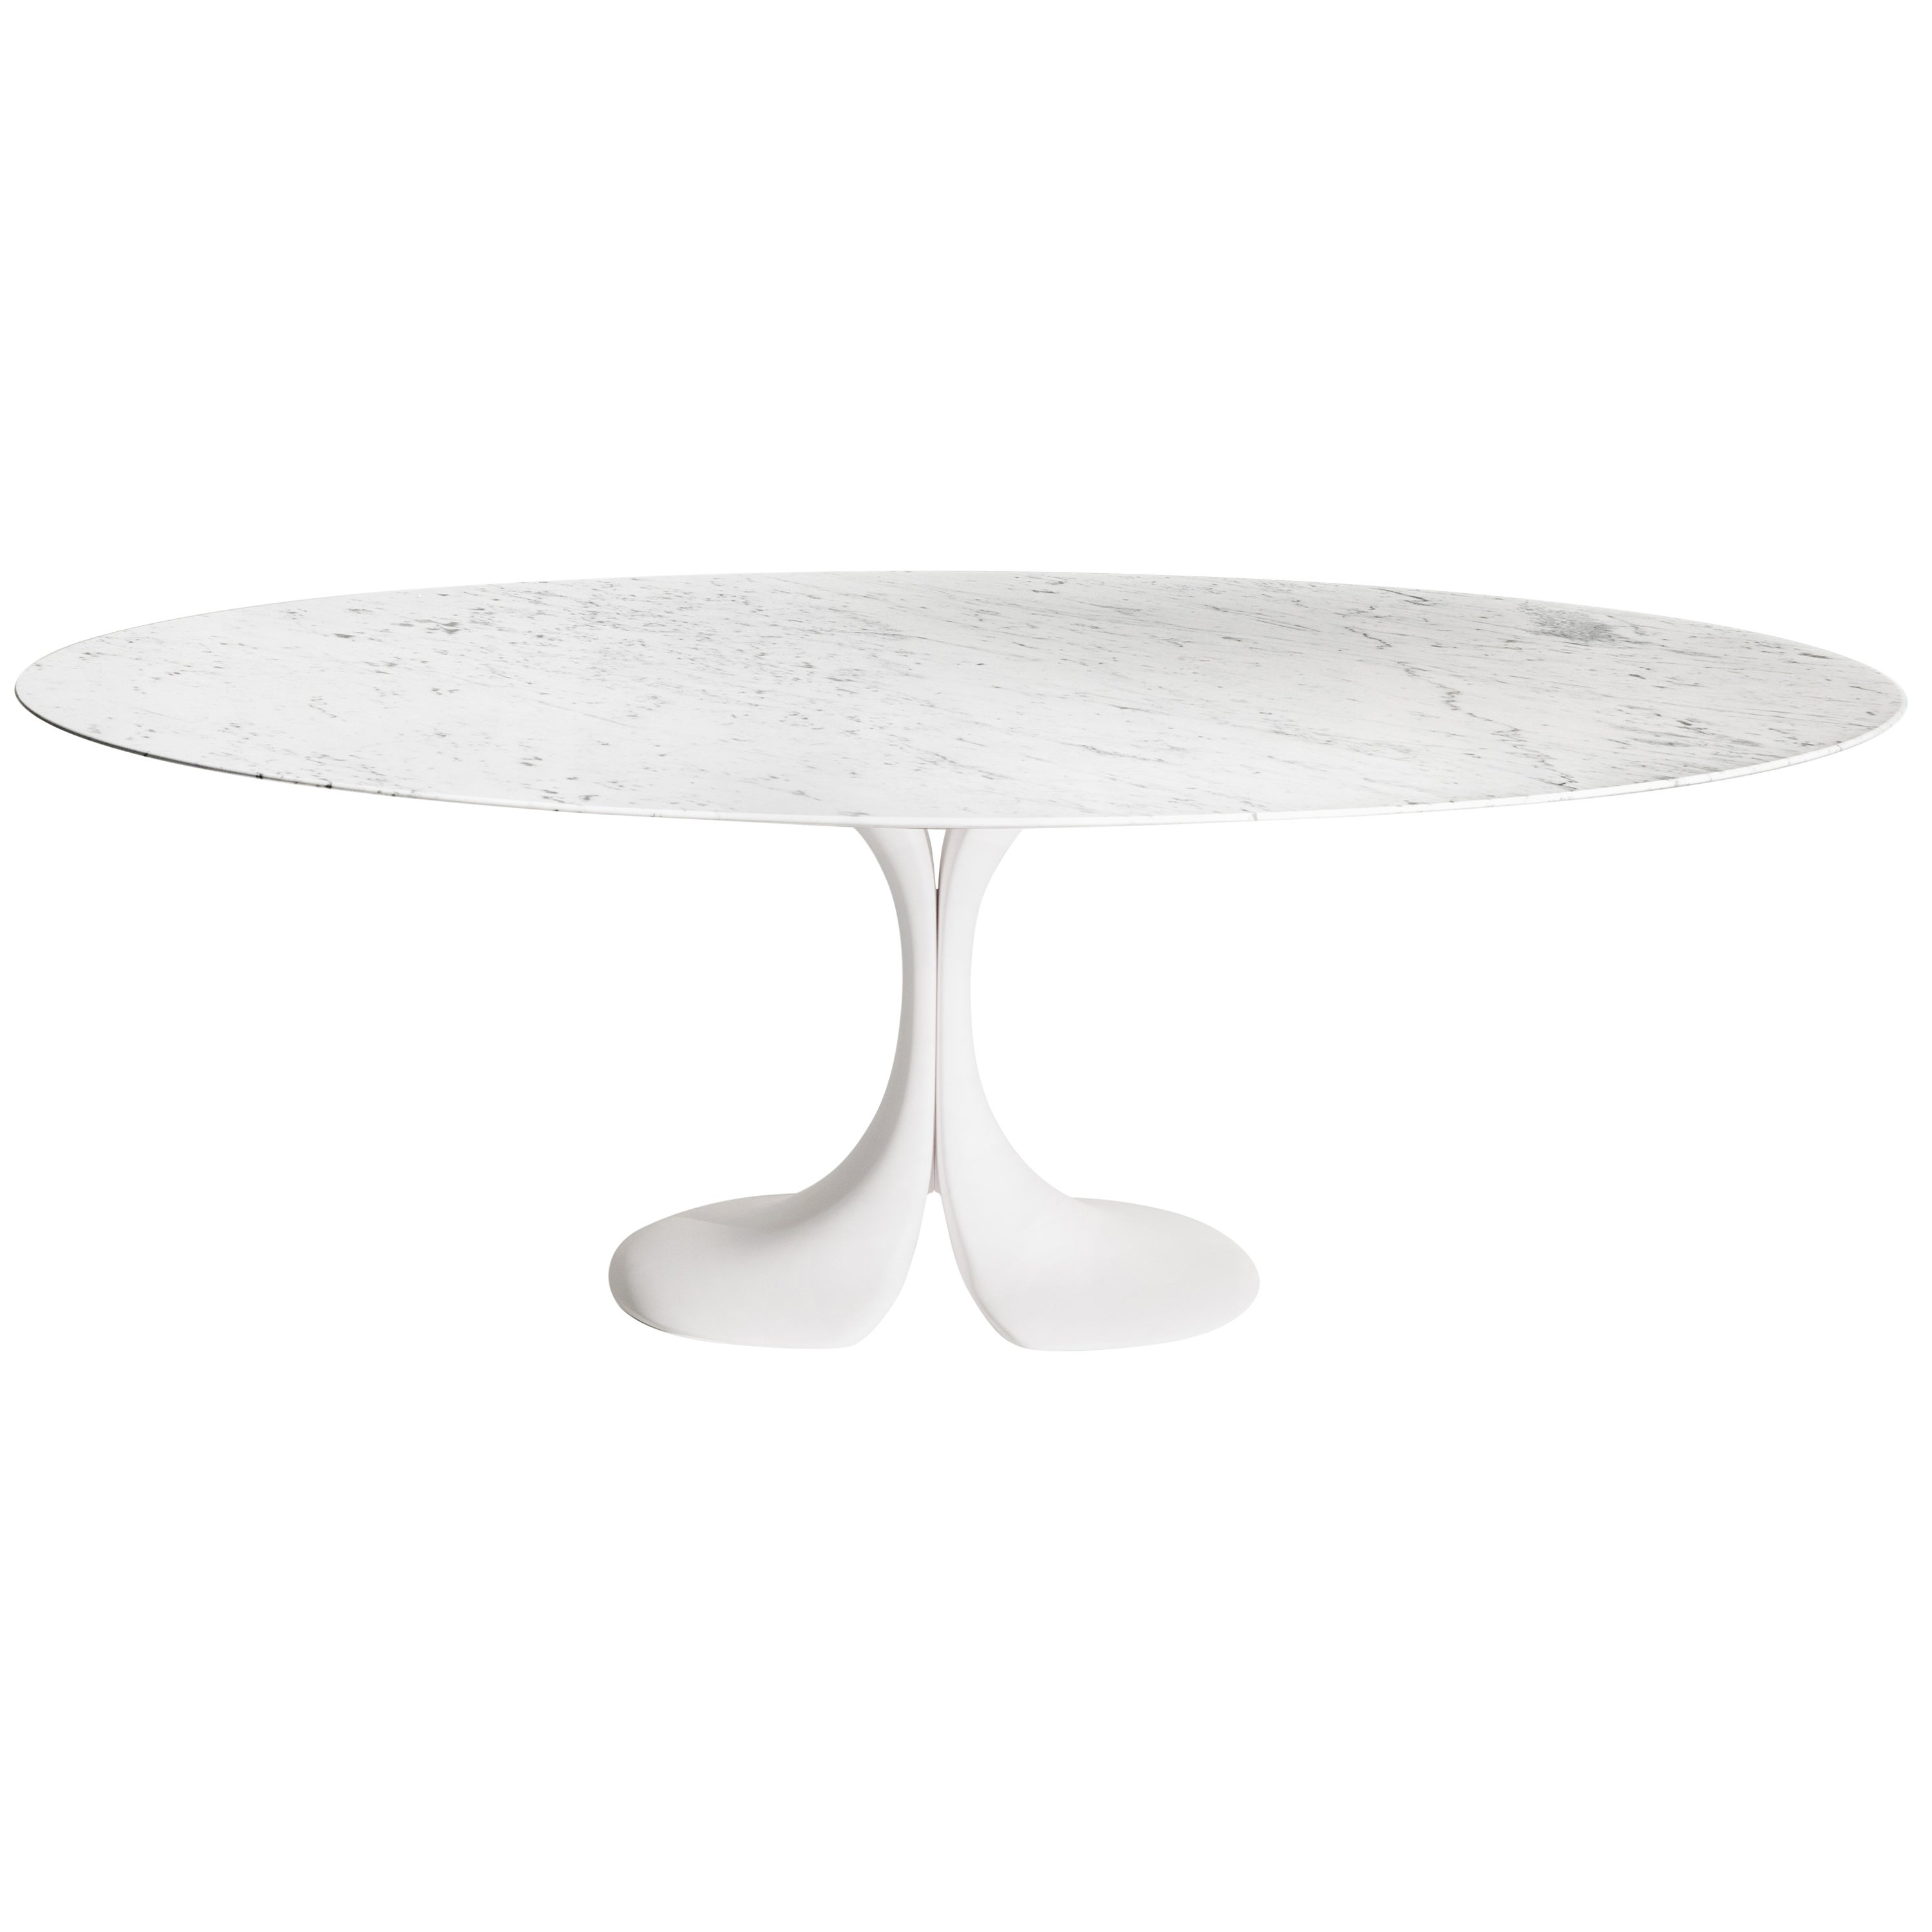 Didymos Oval Table with White Marble Top by Antonia Astori for Driade